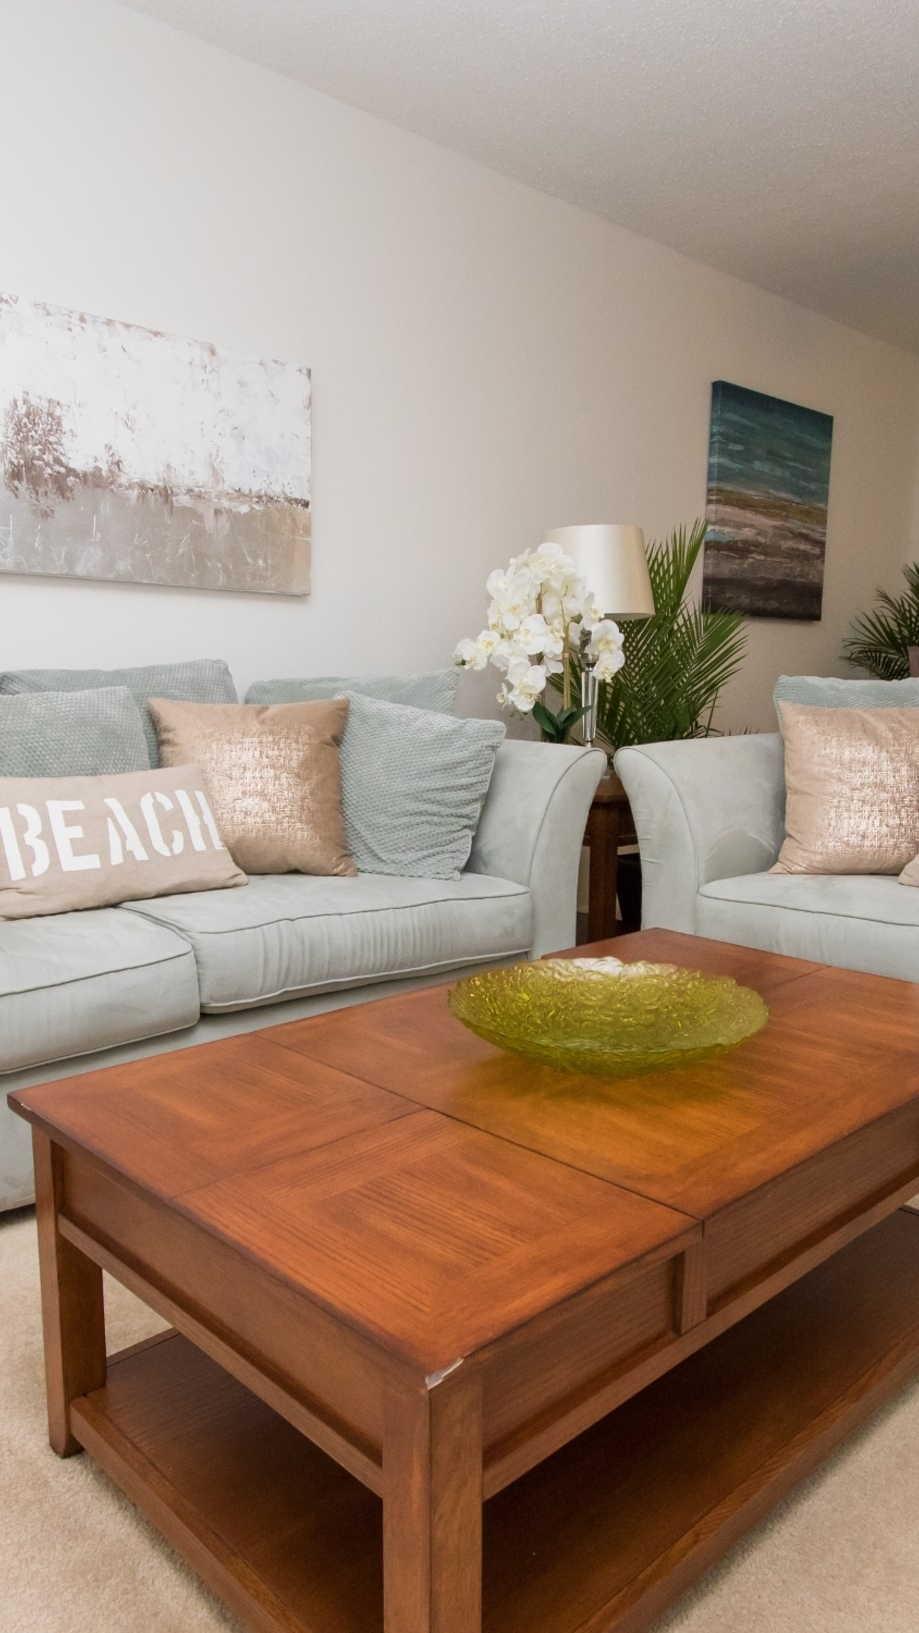 1 and 2 Bedroom Apartments in Largo, Florida